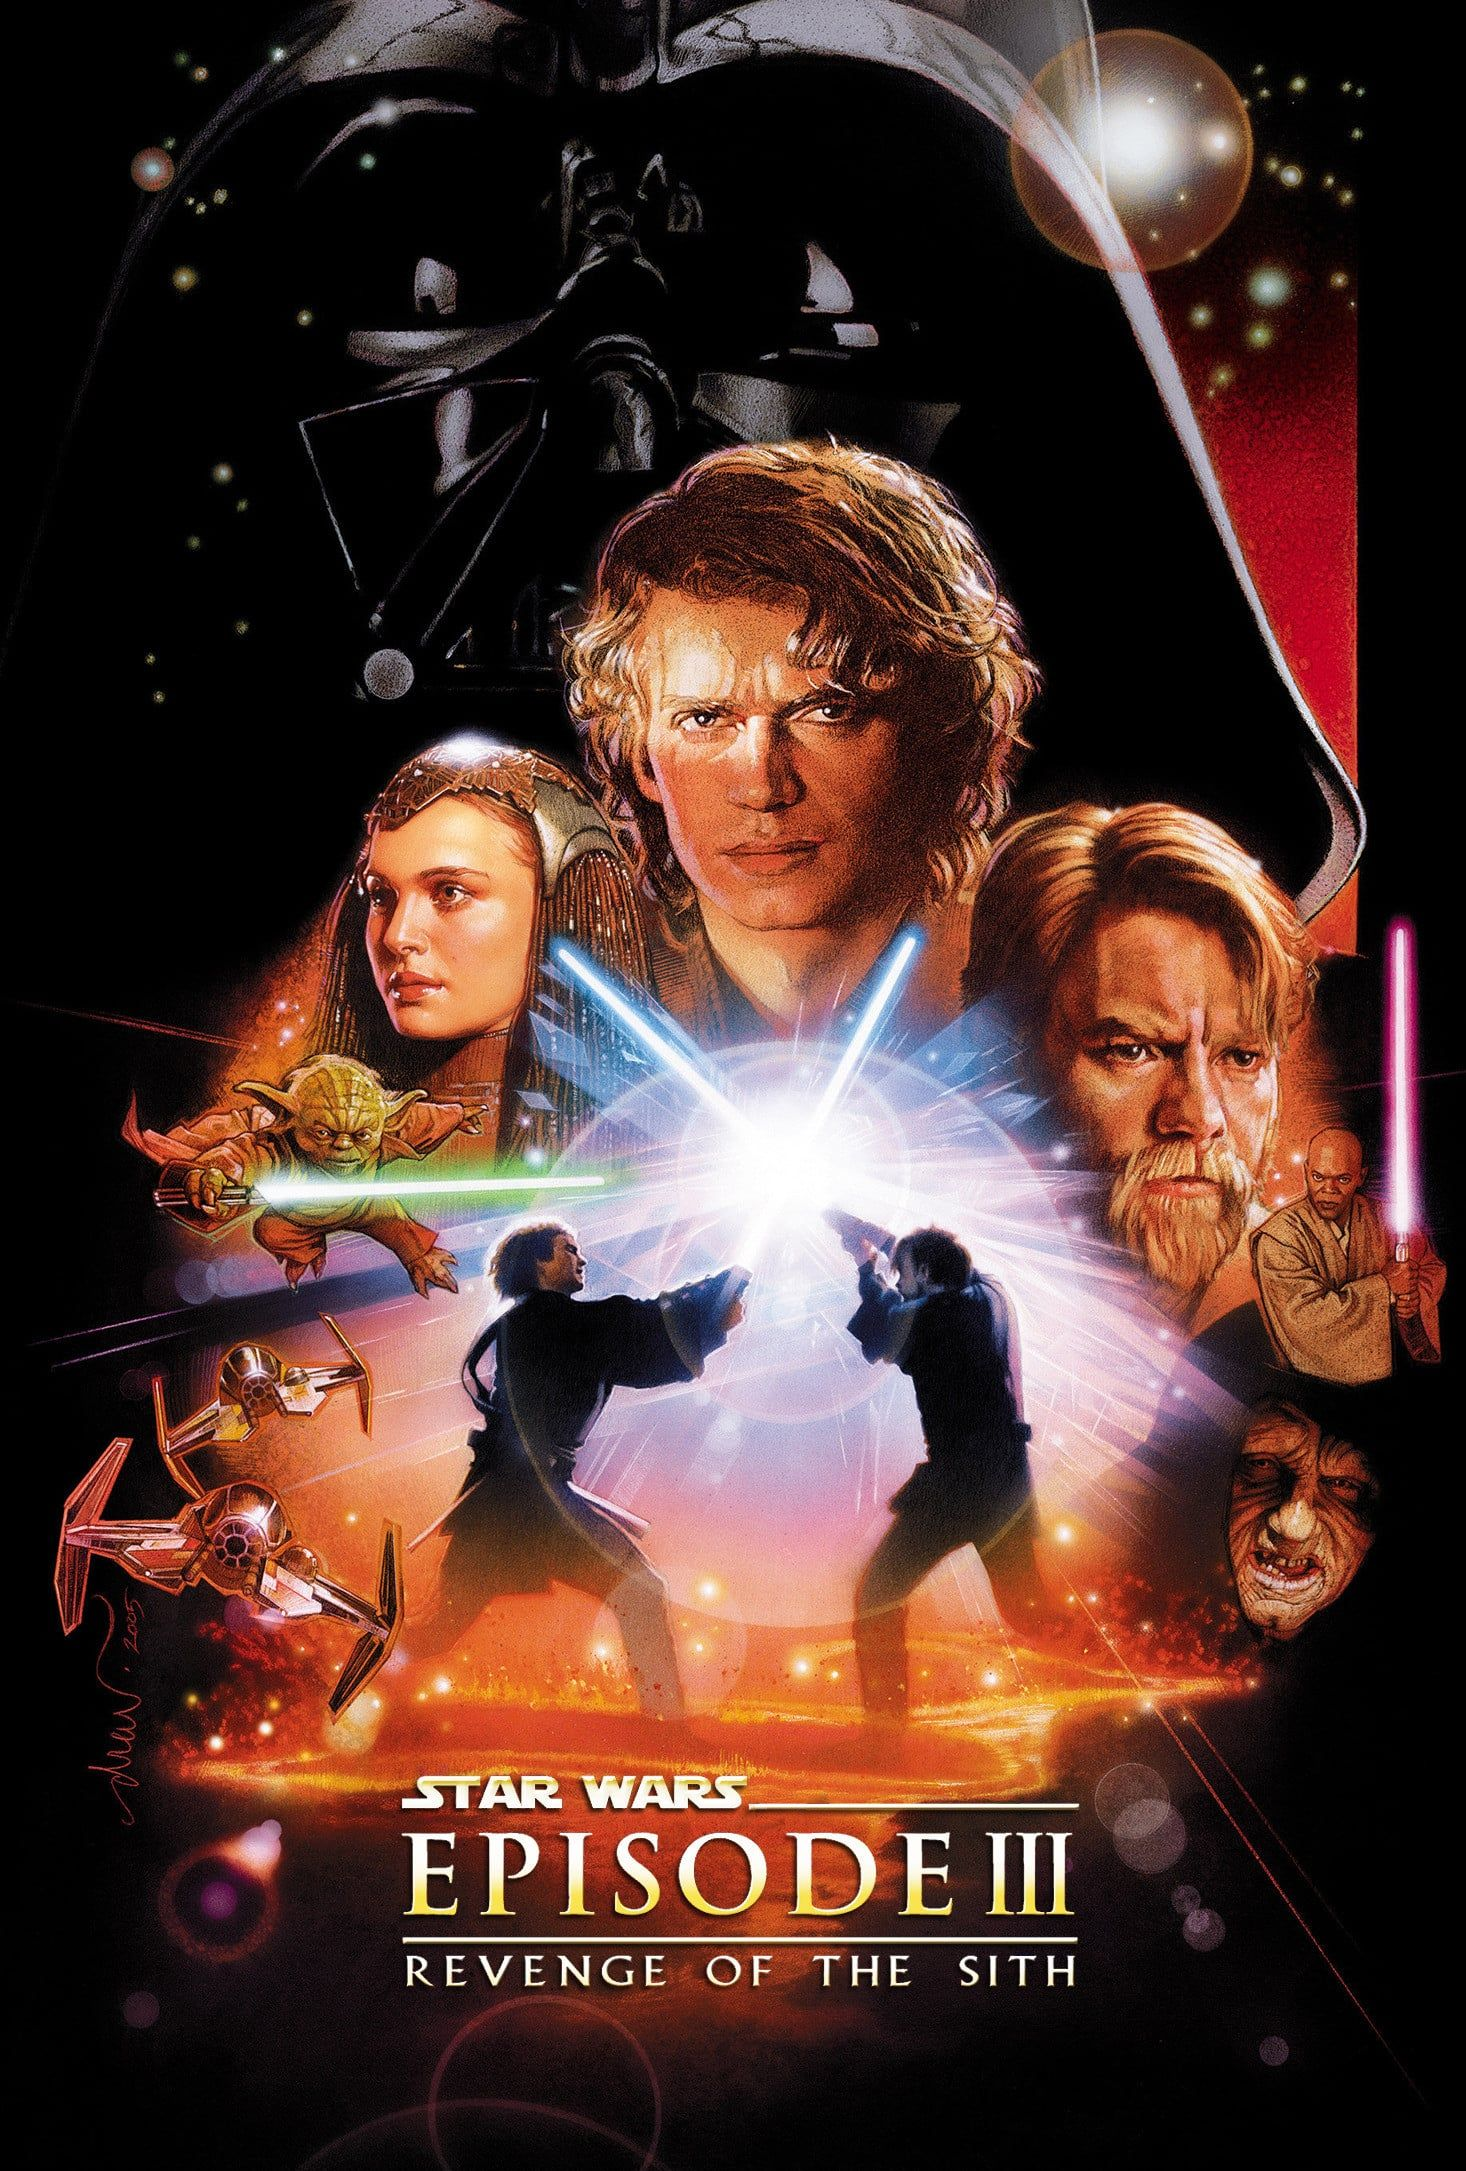 Star Wars Episode Iii Revenge Of The Sith Star Wars Episode Ii Star Wars Film Star Wars Watch